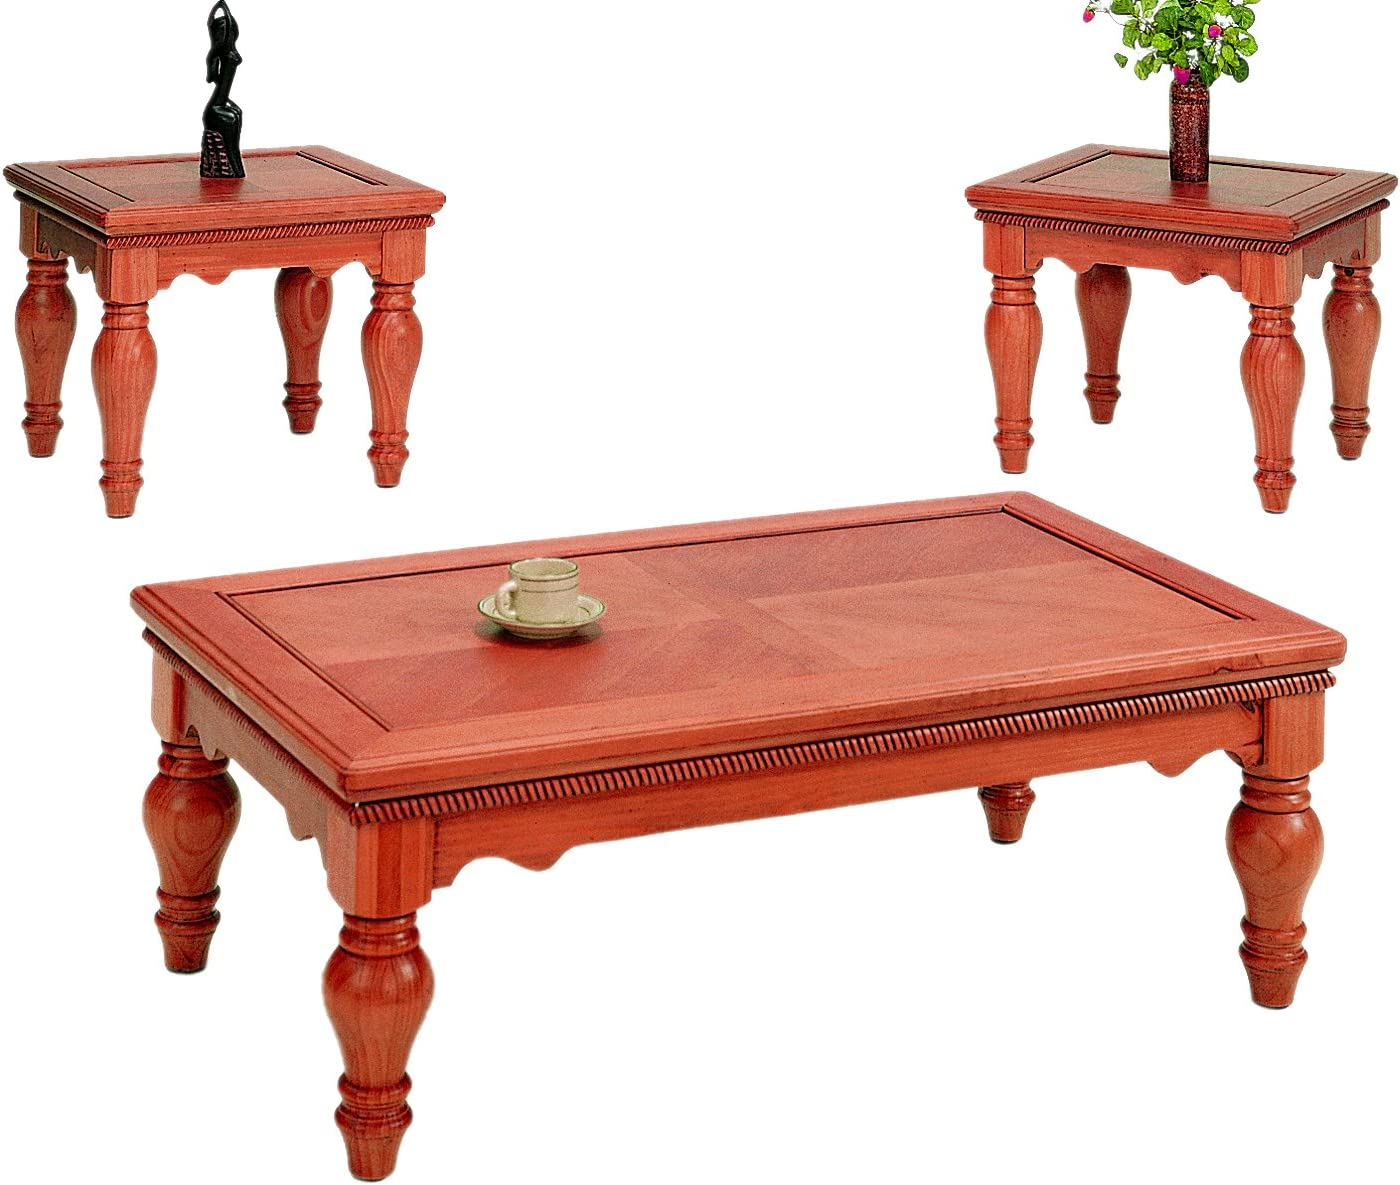 Max 41% OFF Frenchi Home 5% OFF Furnishing 3-Piece Coffee Table Set